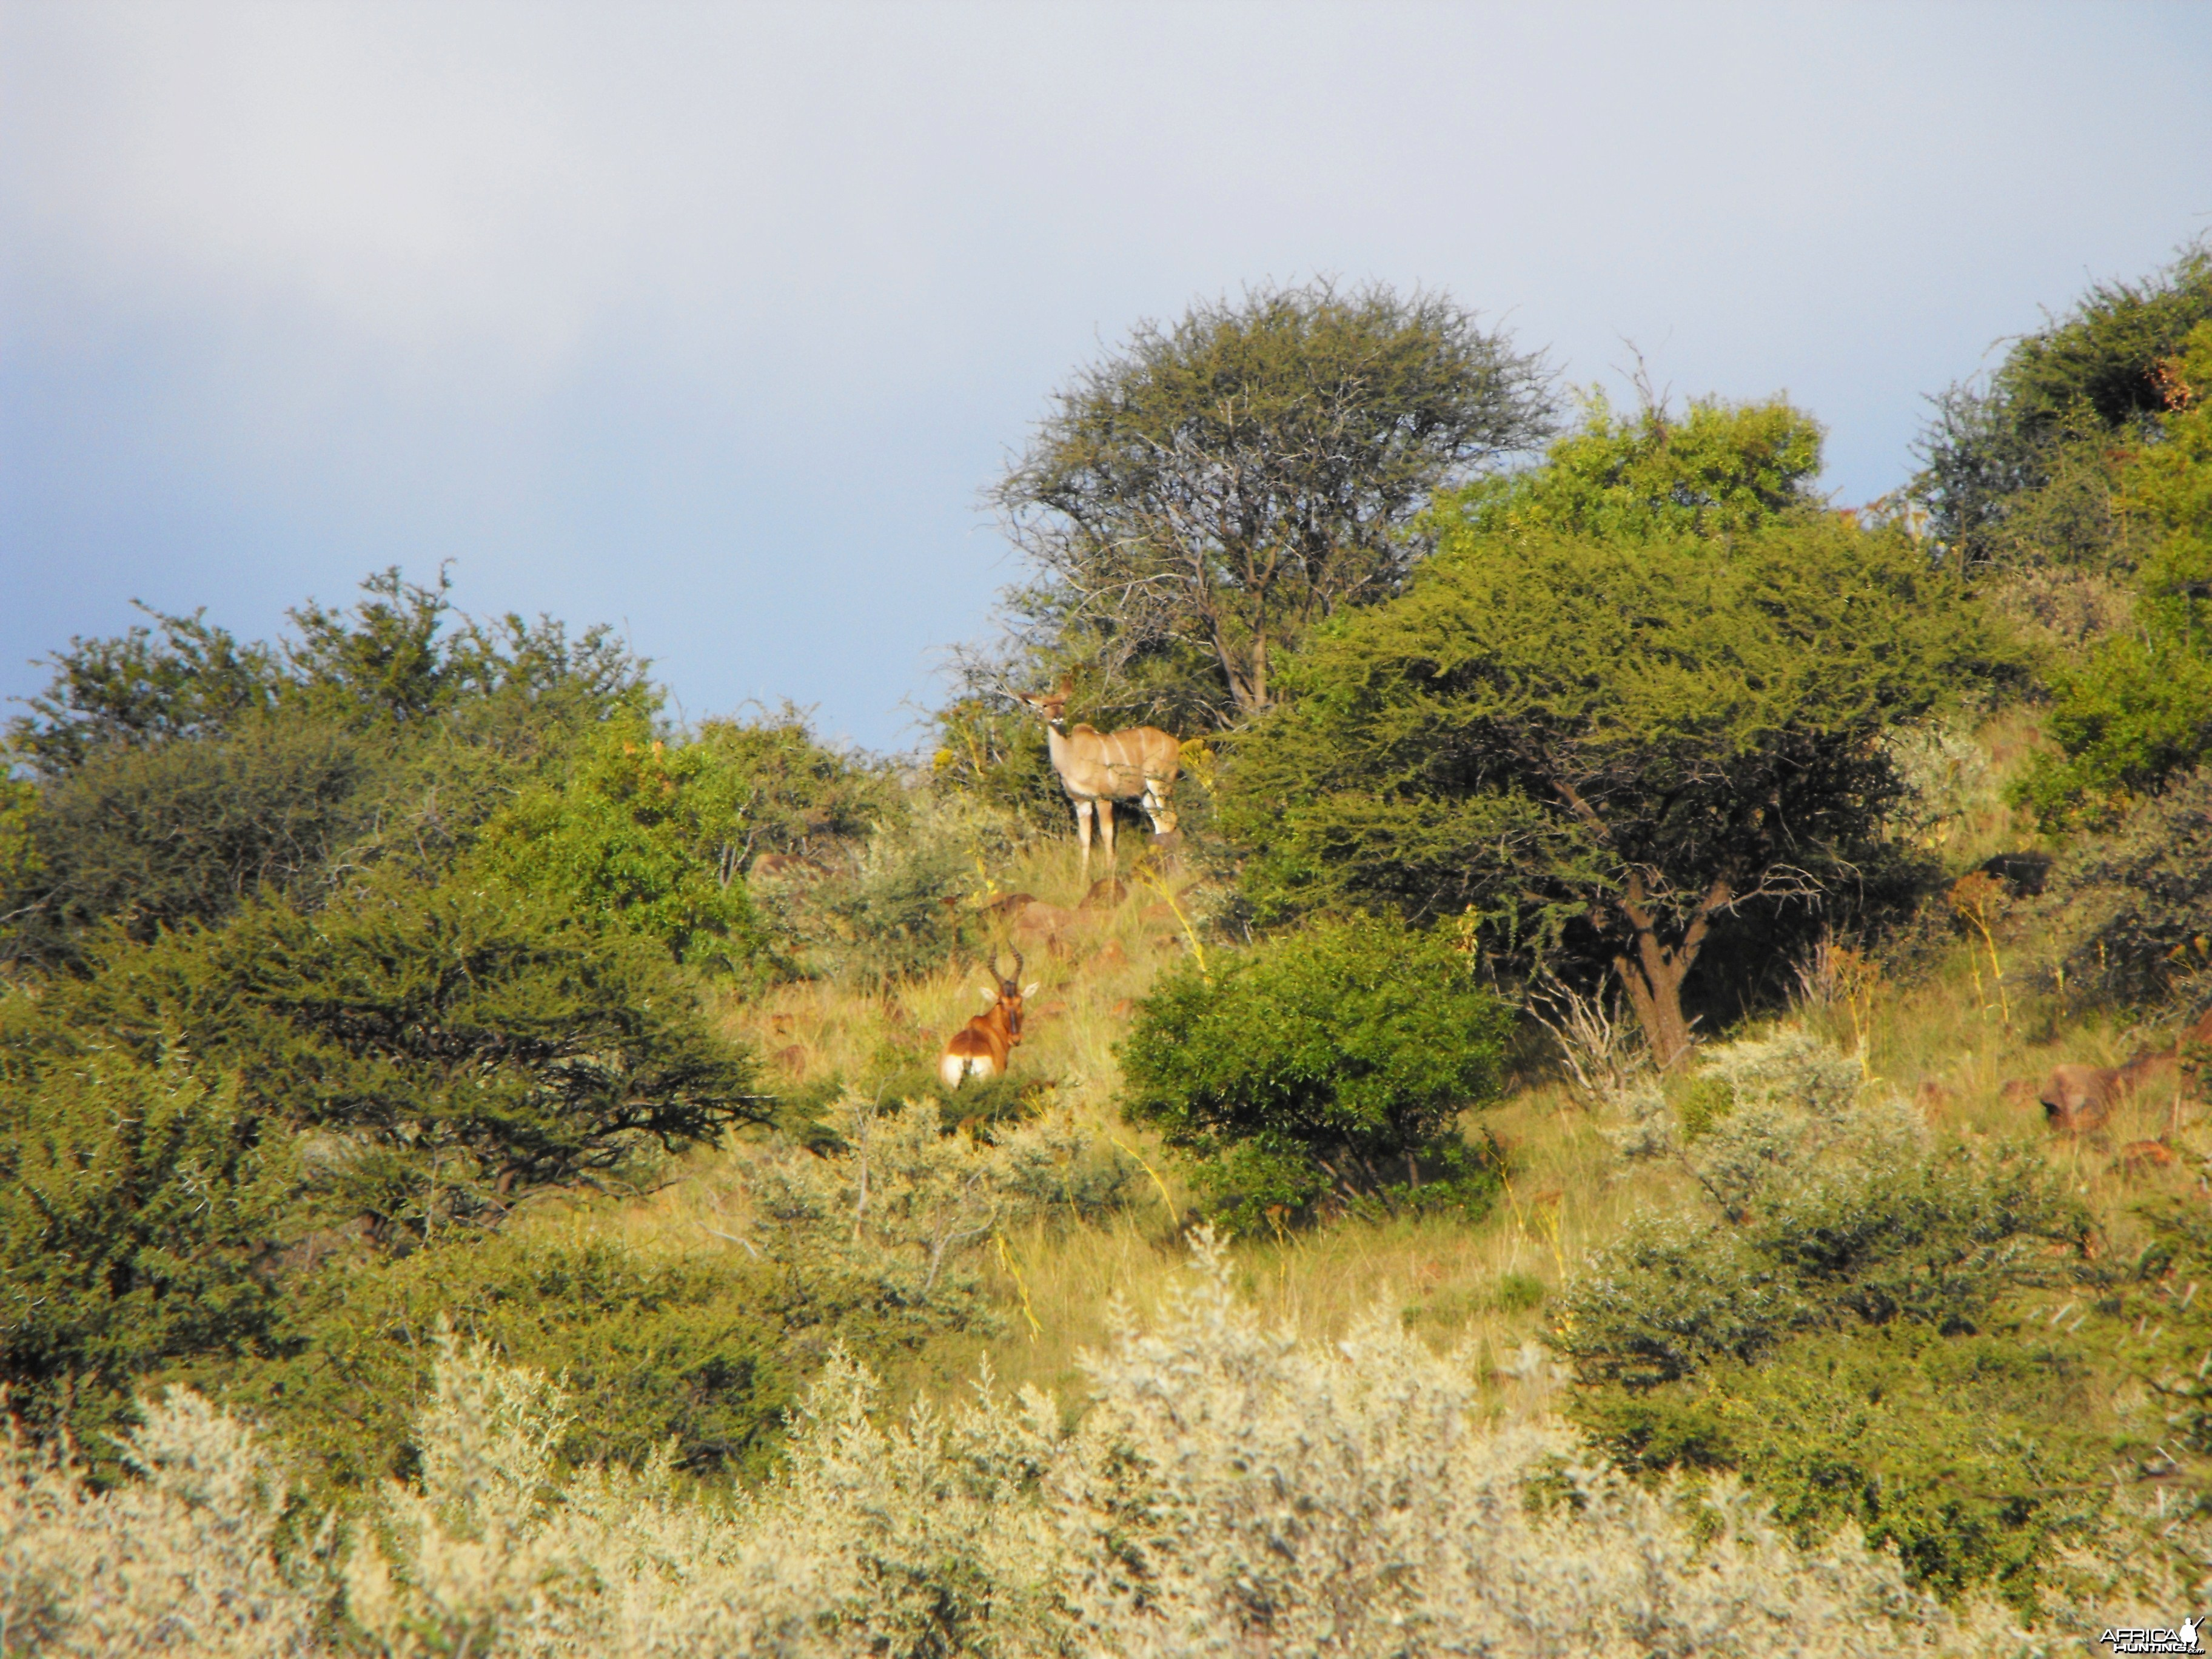 Kudu and Hartebeest